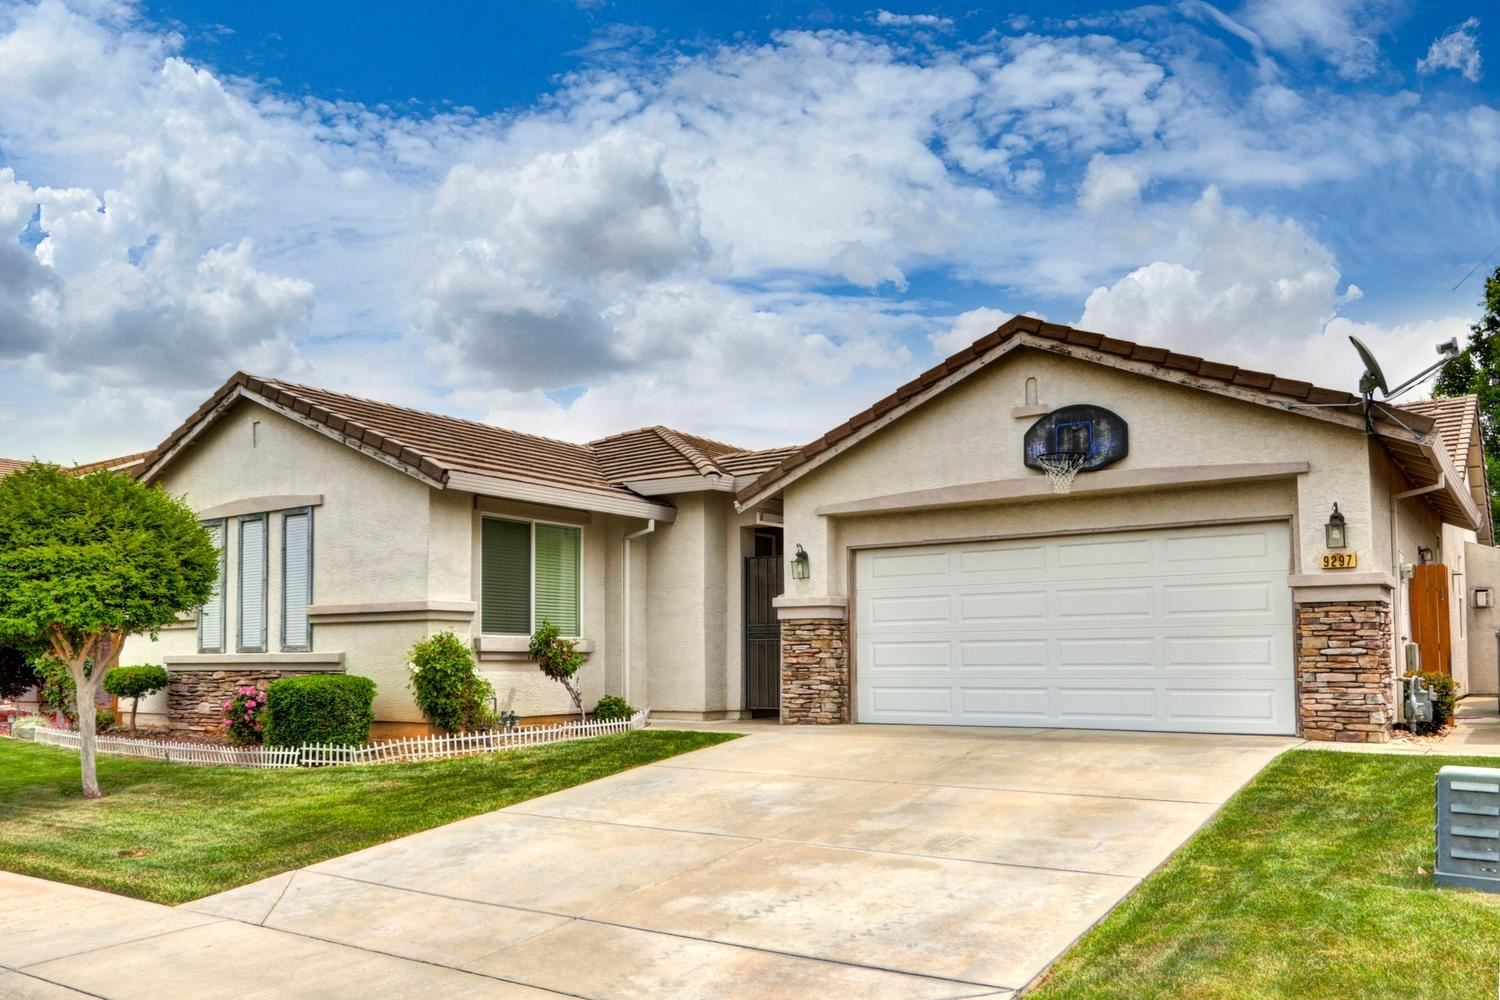 9297 Fox Springs Way, Elk Grove, CA 95624 - #: 20022099